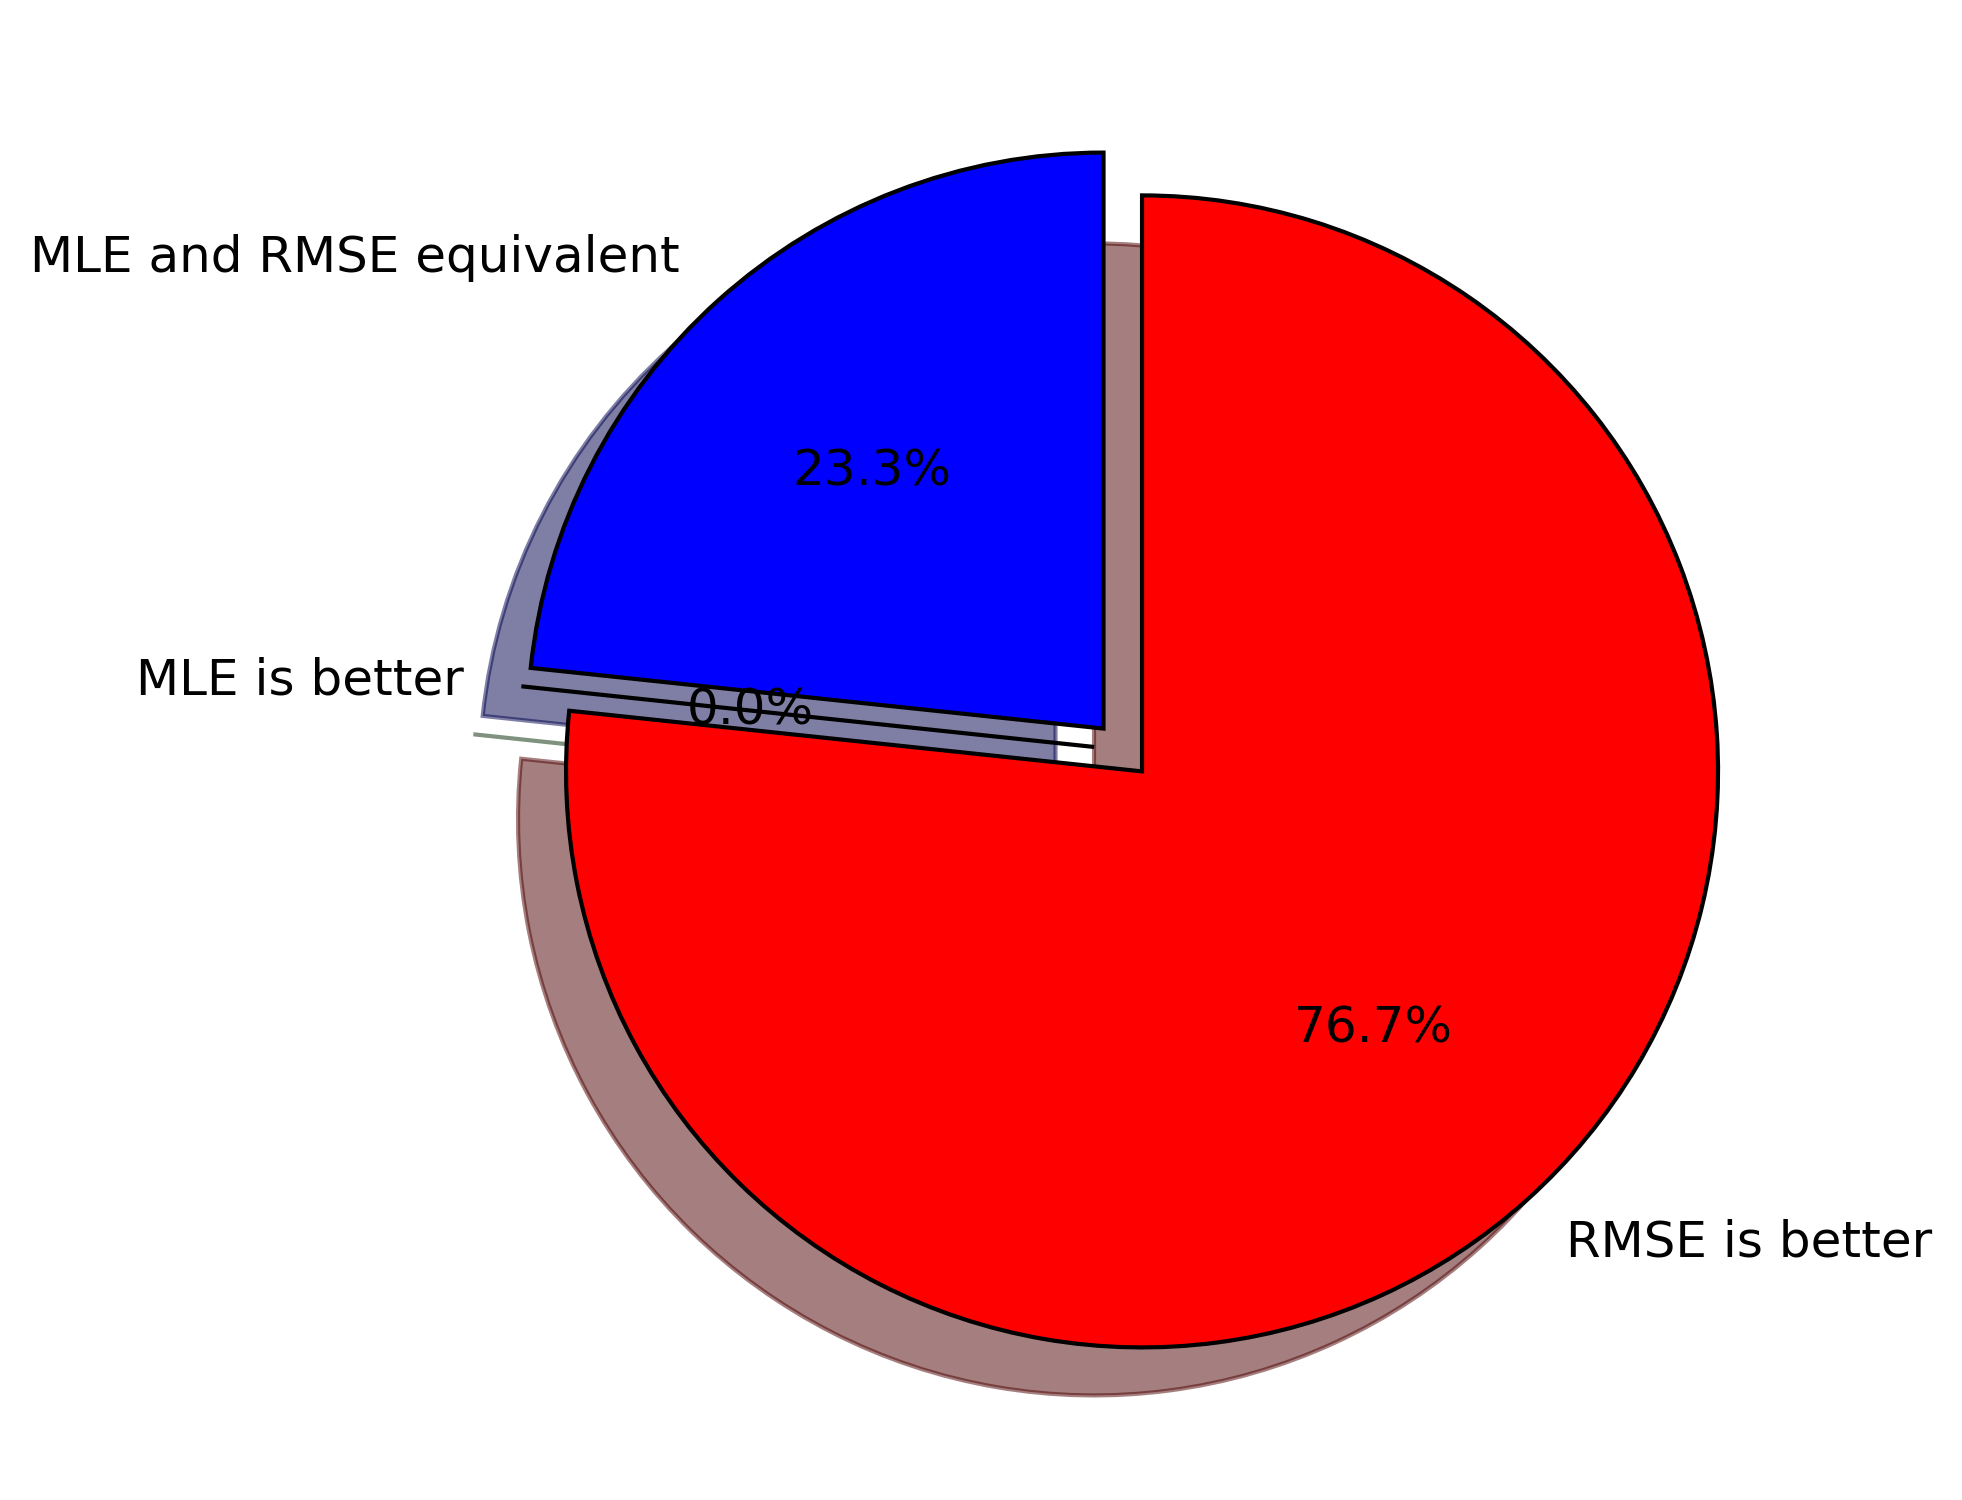 MLE and RMSE equivalent 23.3% of time. RMSE was better 76.7% of the time. Never was MLE better.